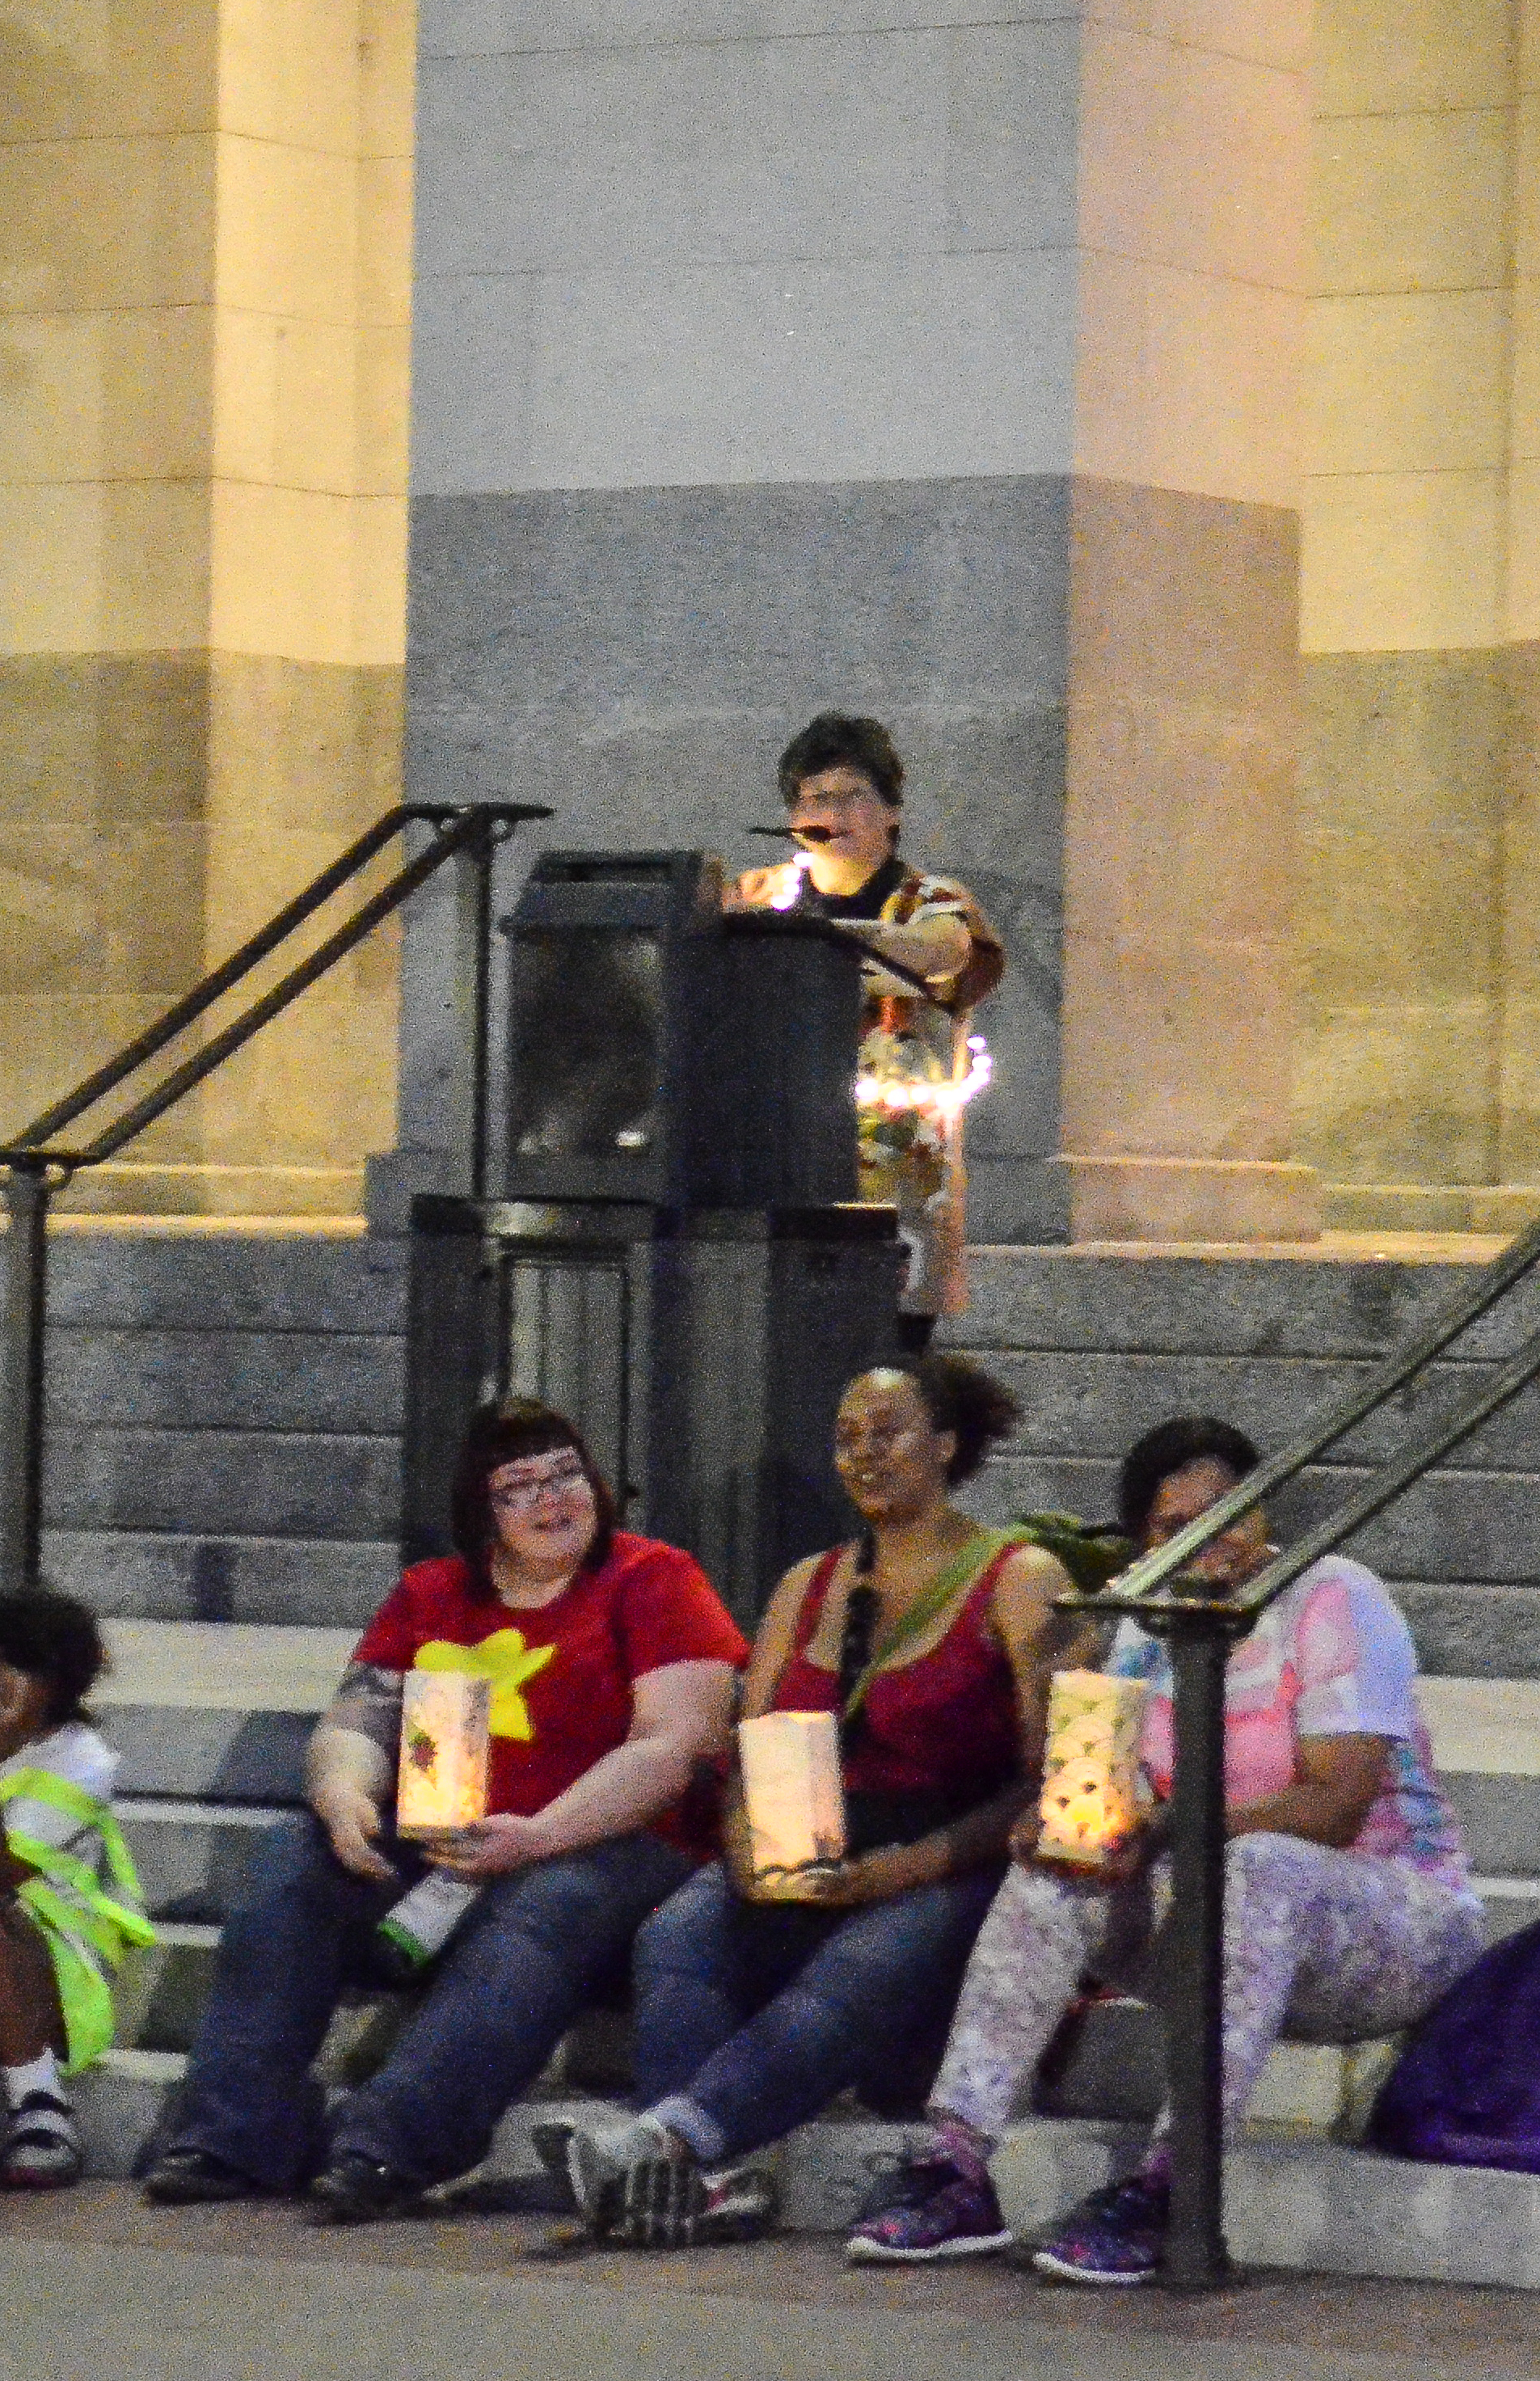 Tiffany speaking at the Capital